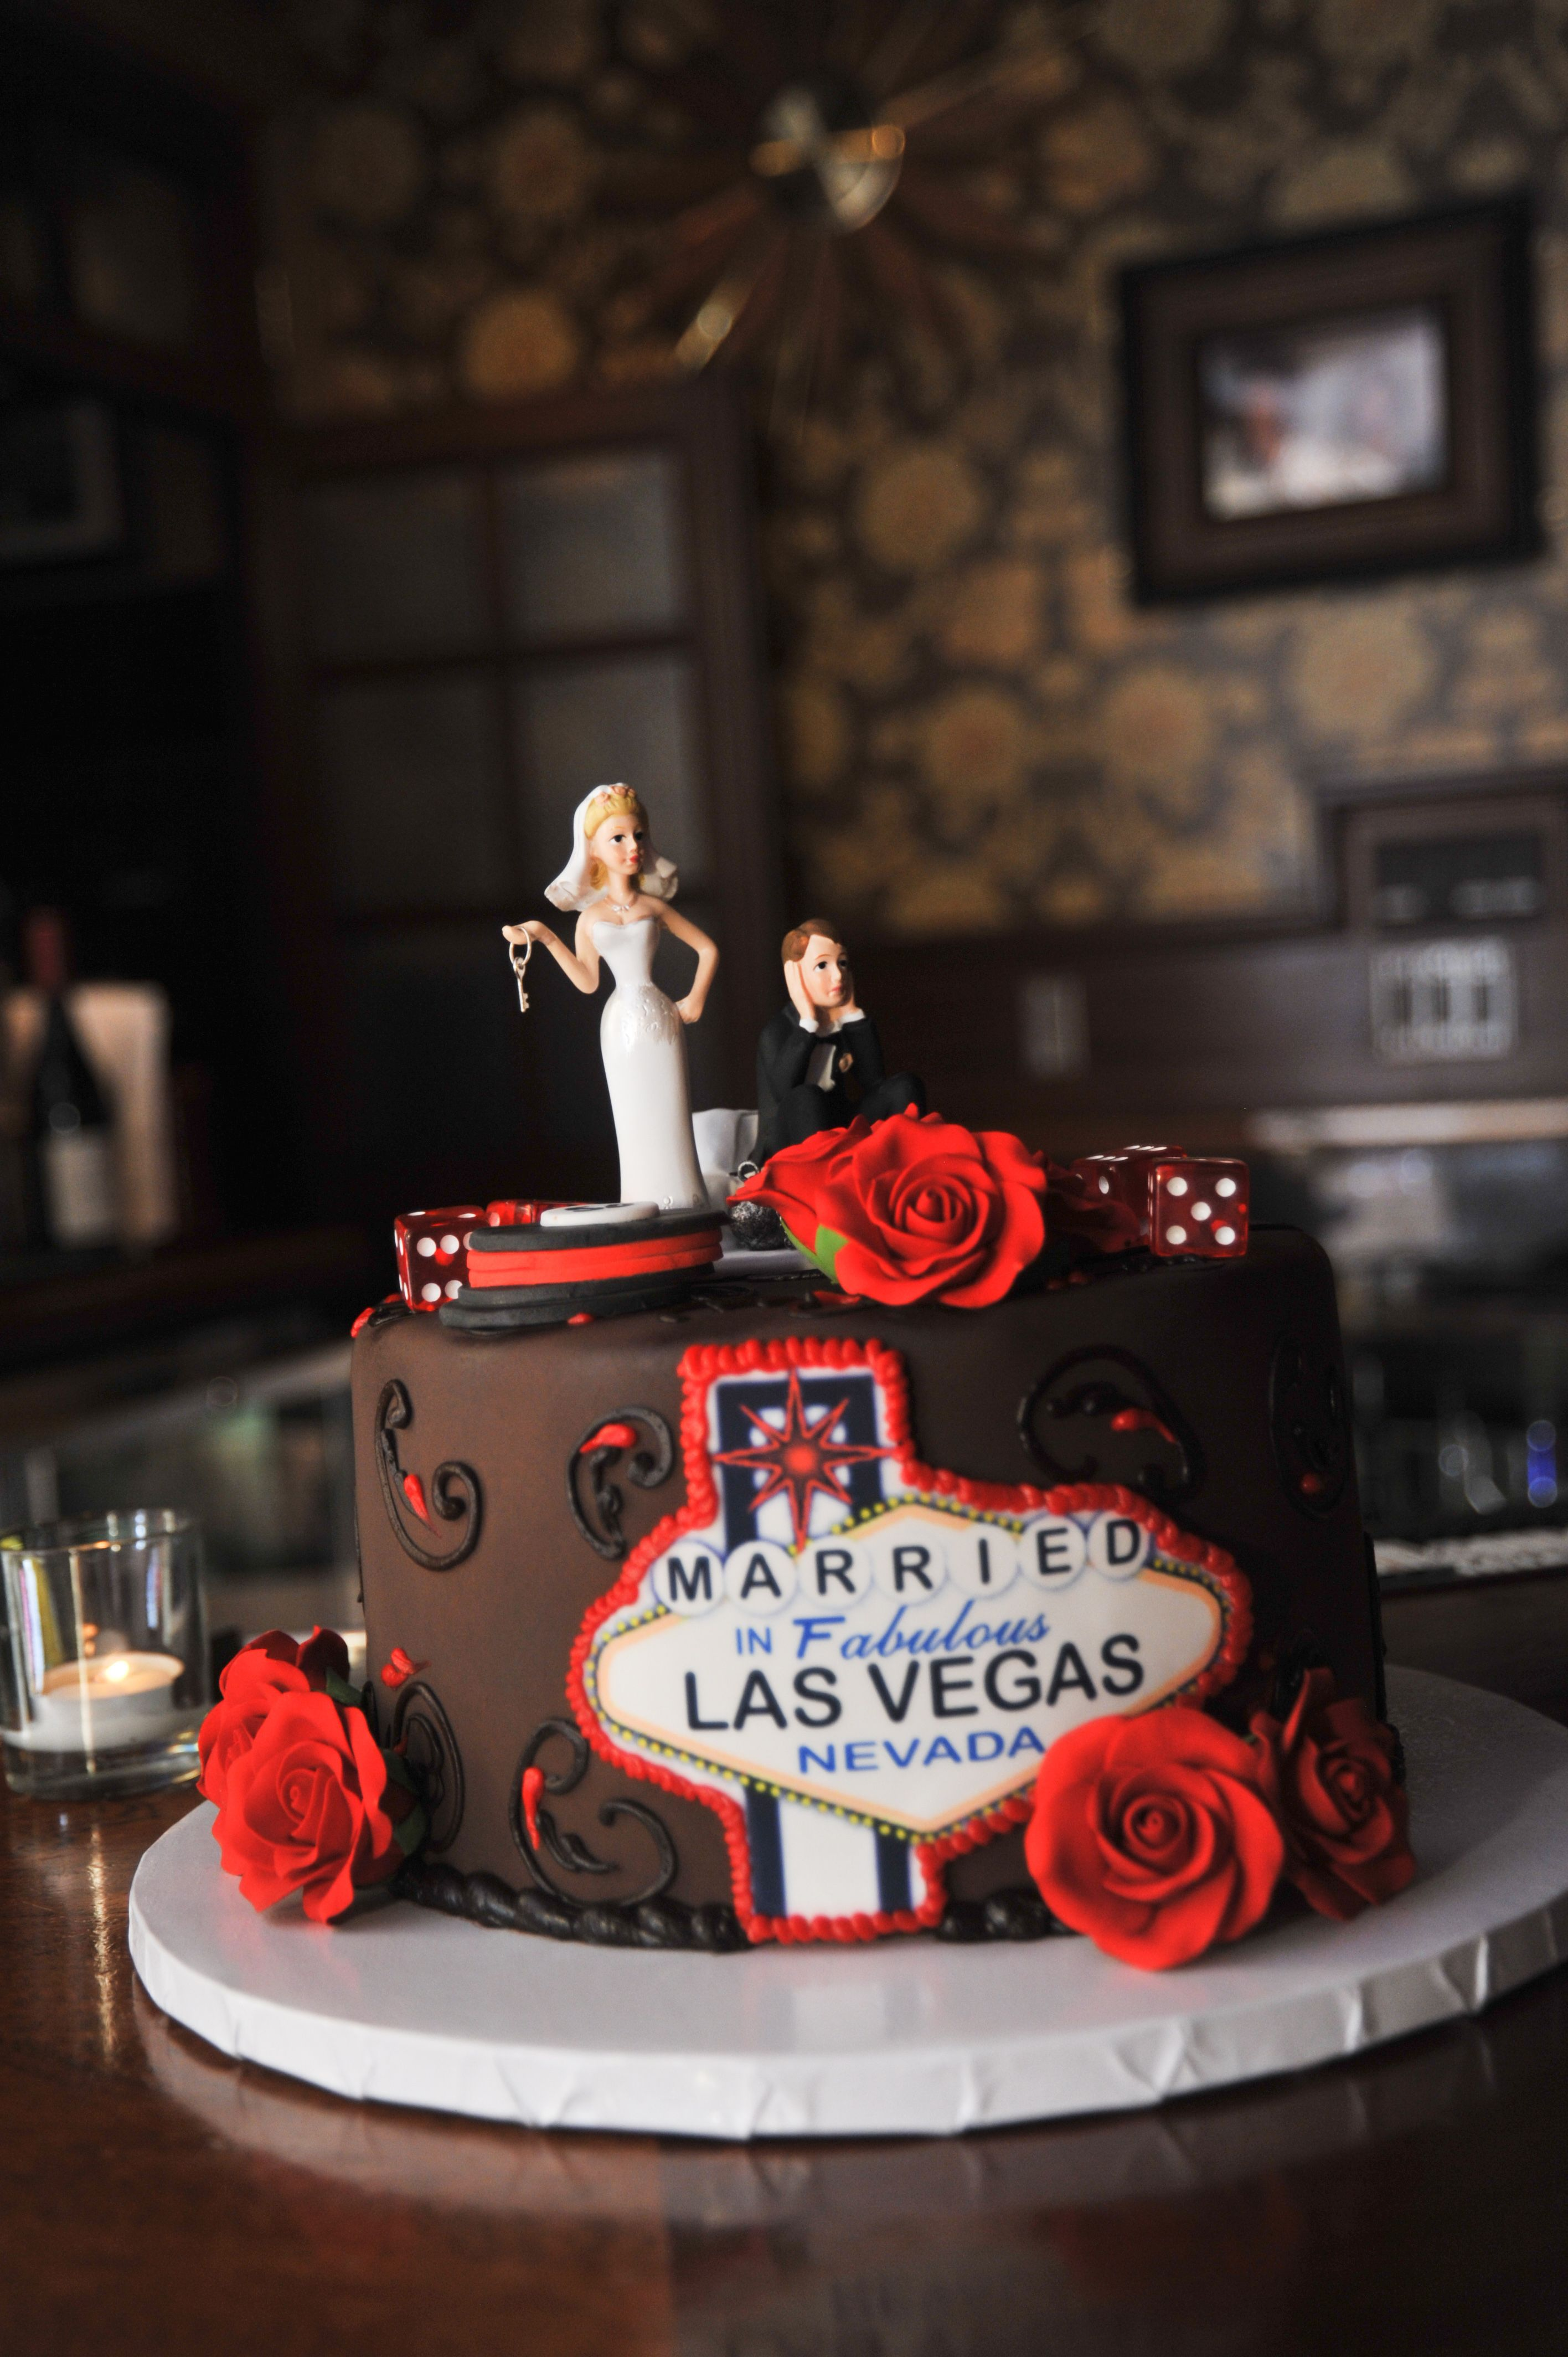 Customized Cake Toppers Are A Great Way To Personalize Your Las